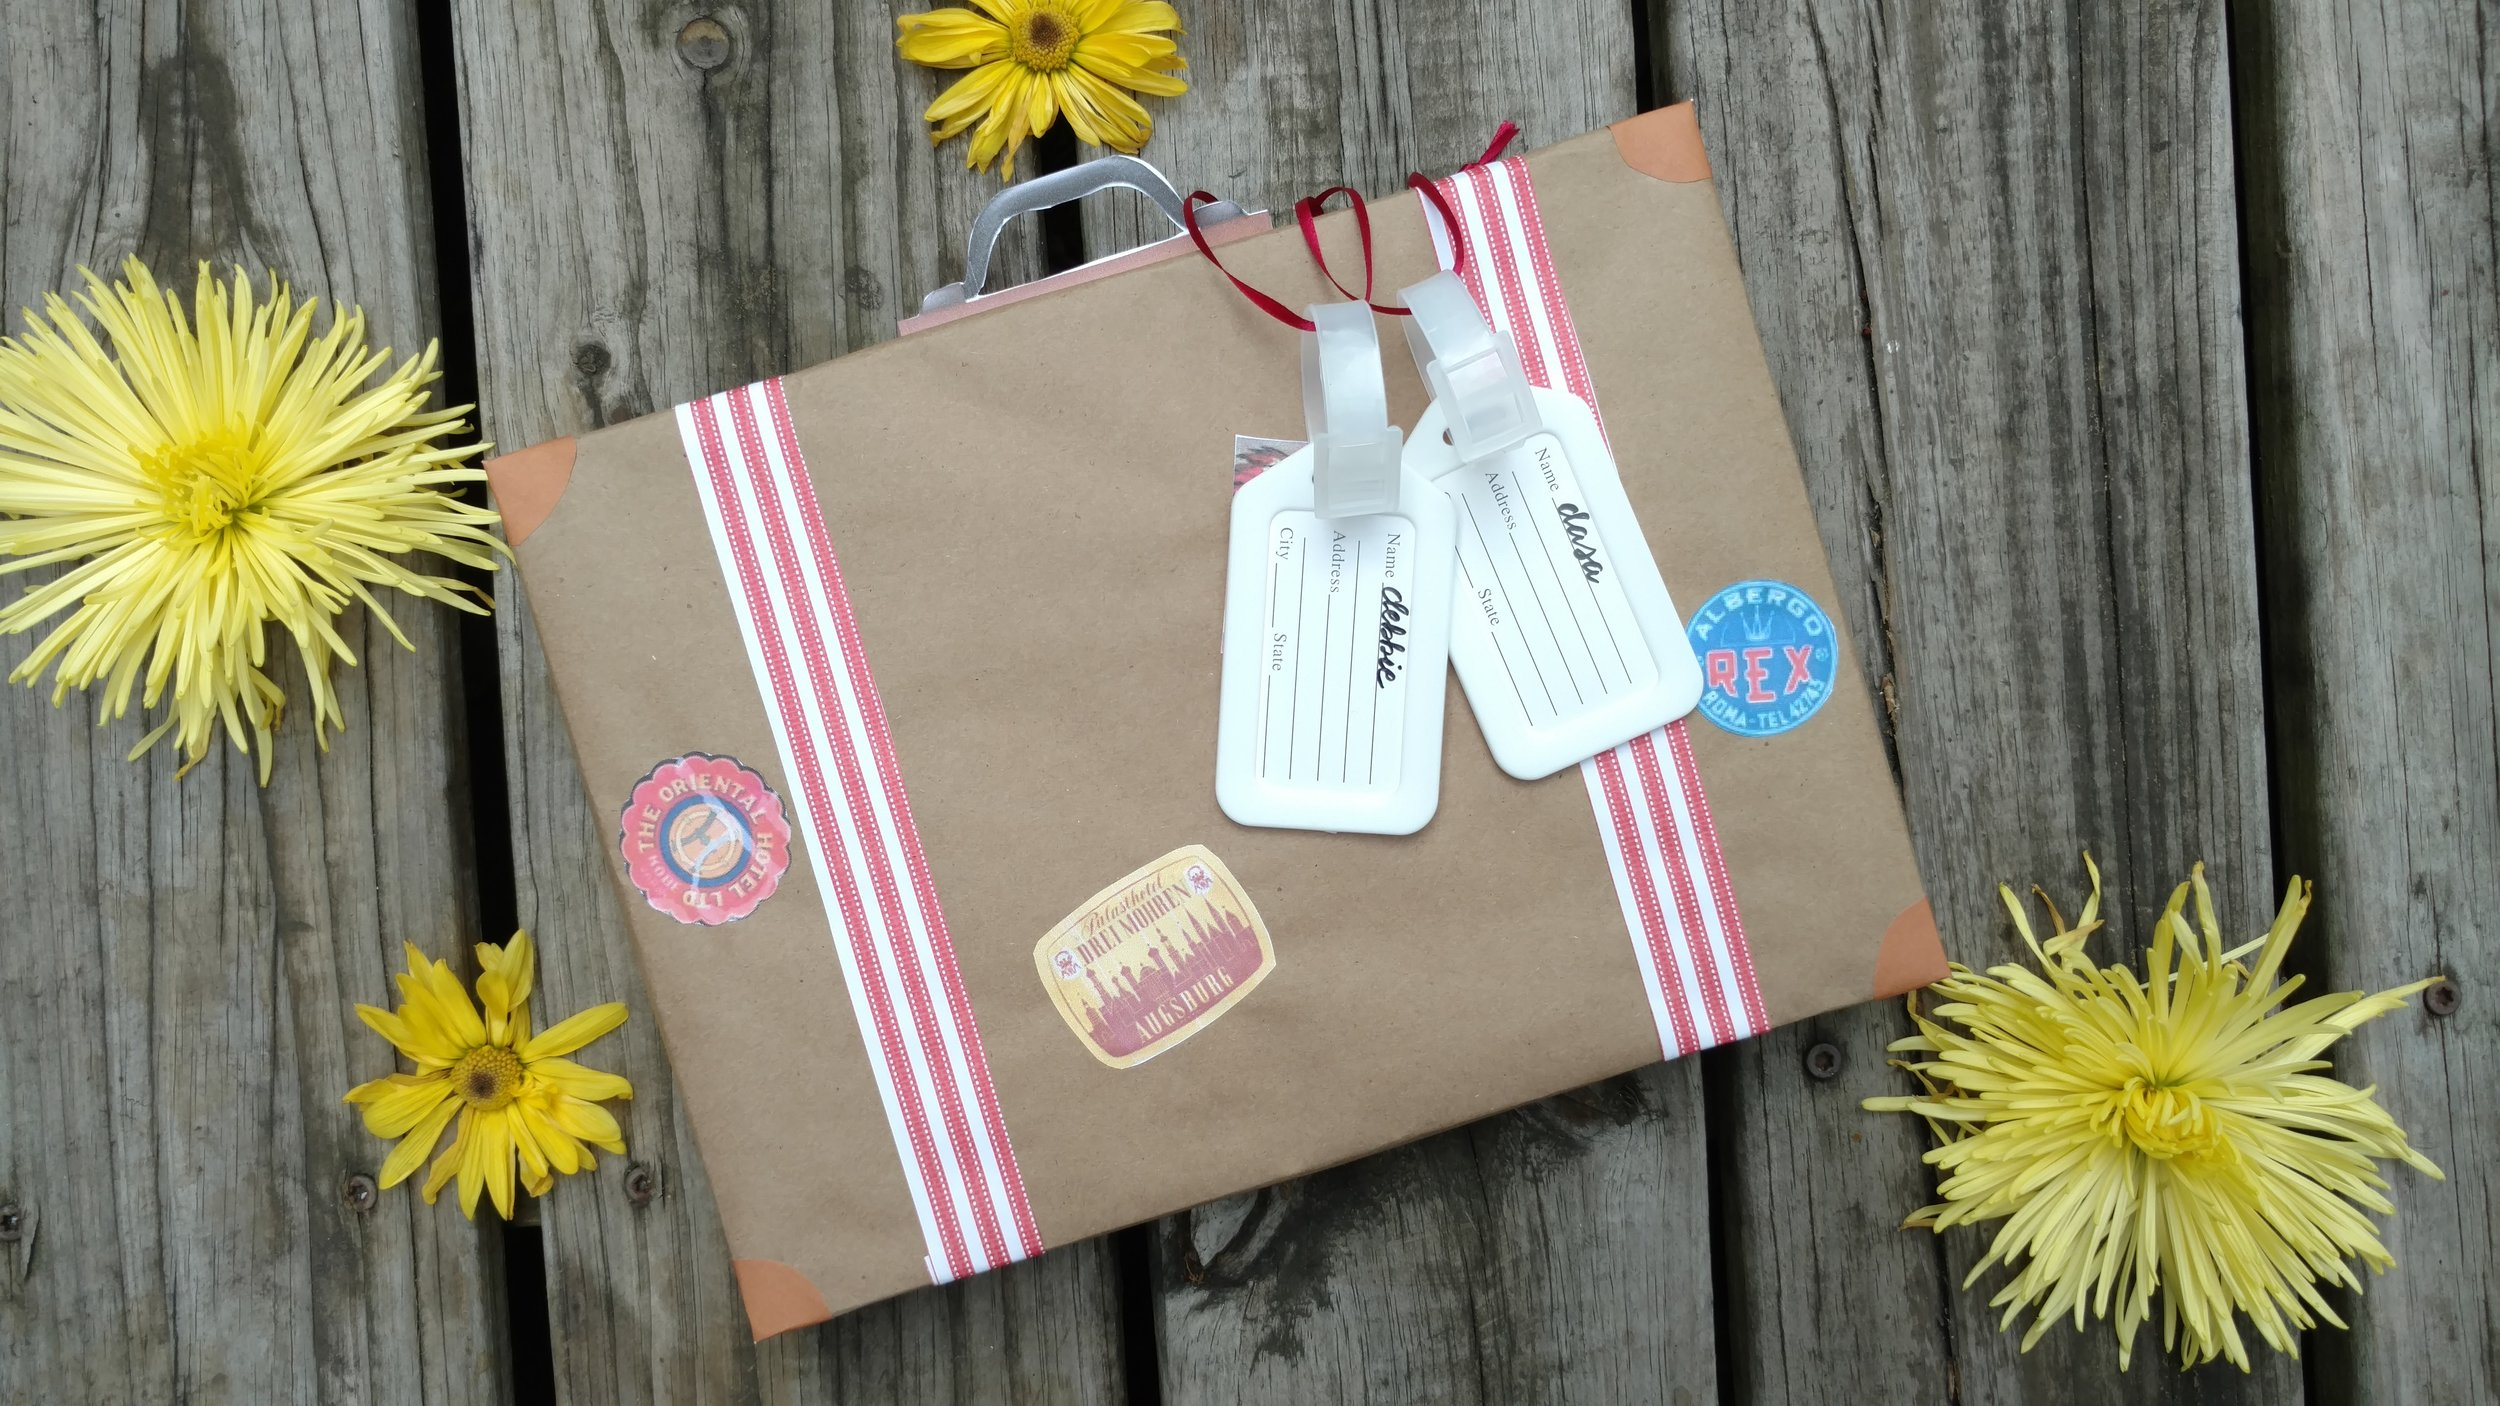 I used mailing paper (like kraft paper) to wrap gift boxes to look like suitcases.   Jot mailing paper rolls  / Gift Boxes /  Printable travel stickers  /  DIY handles template